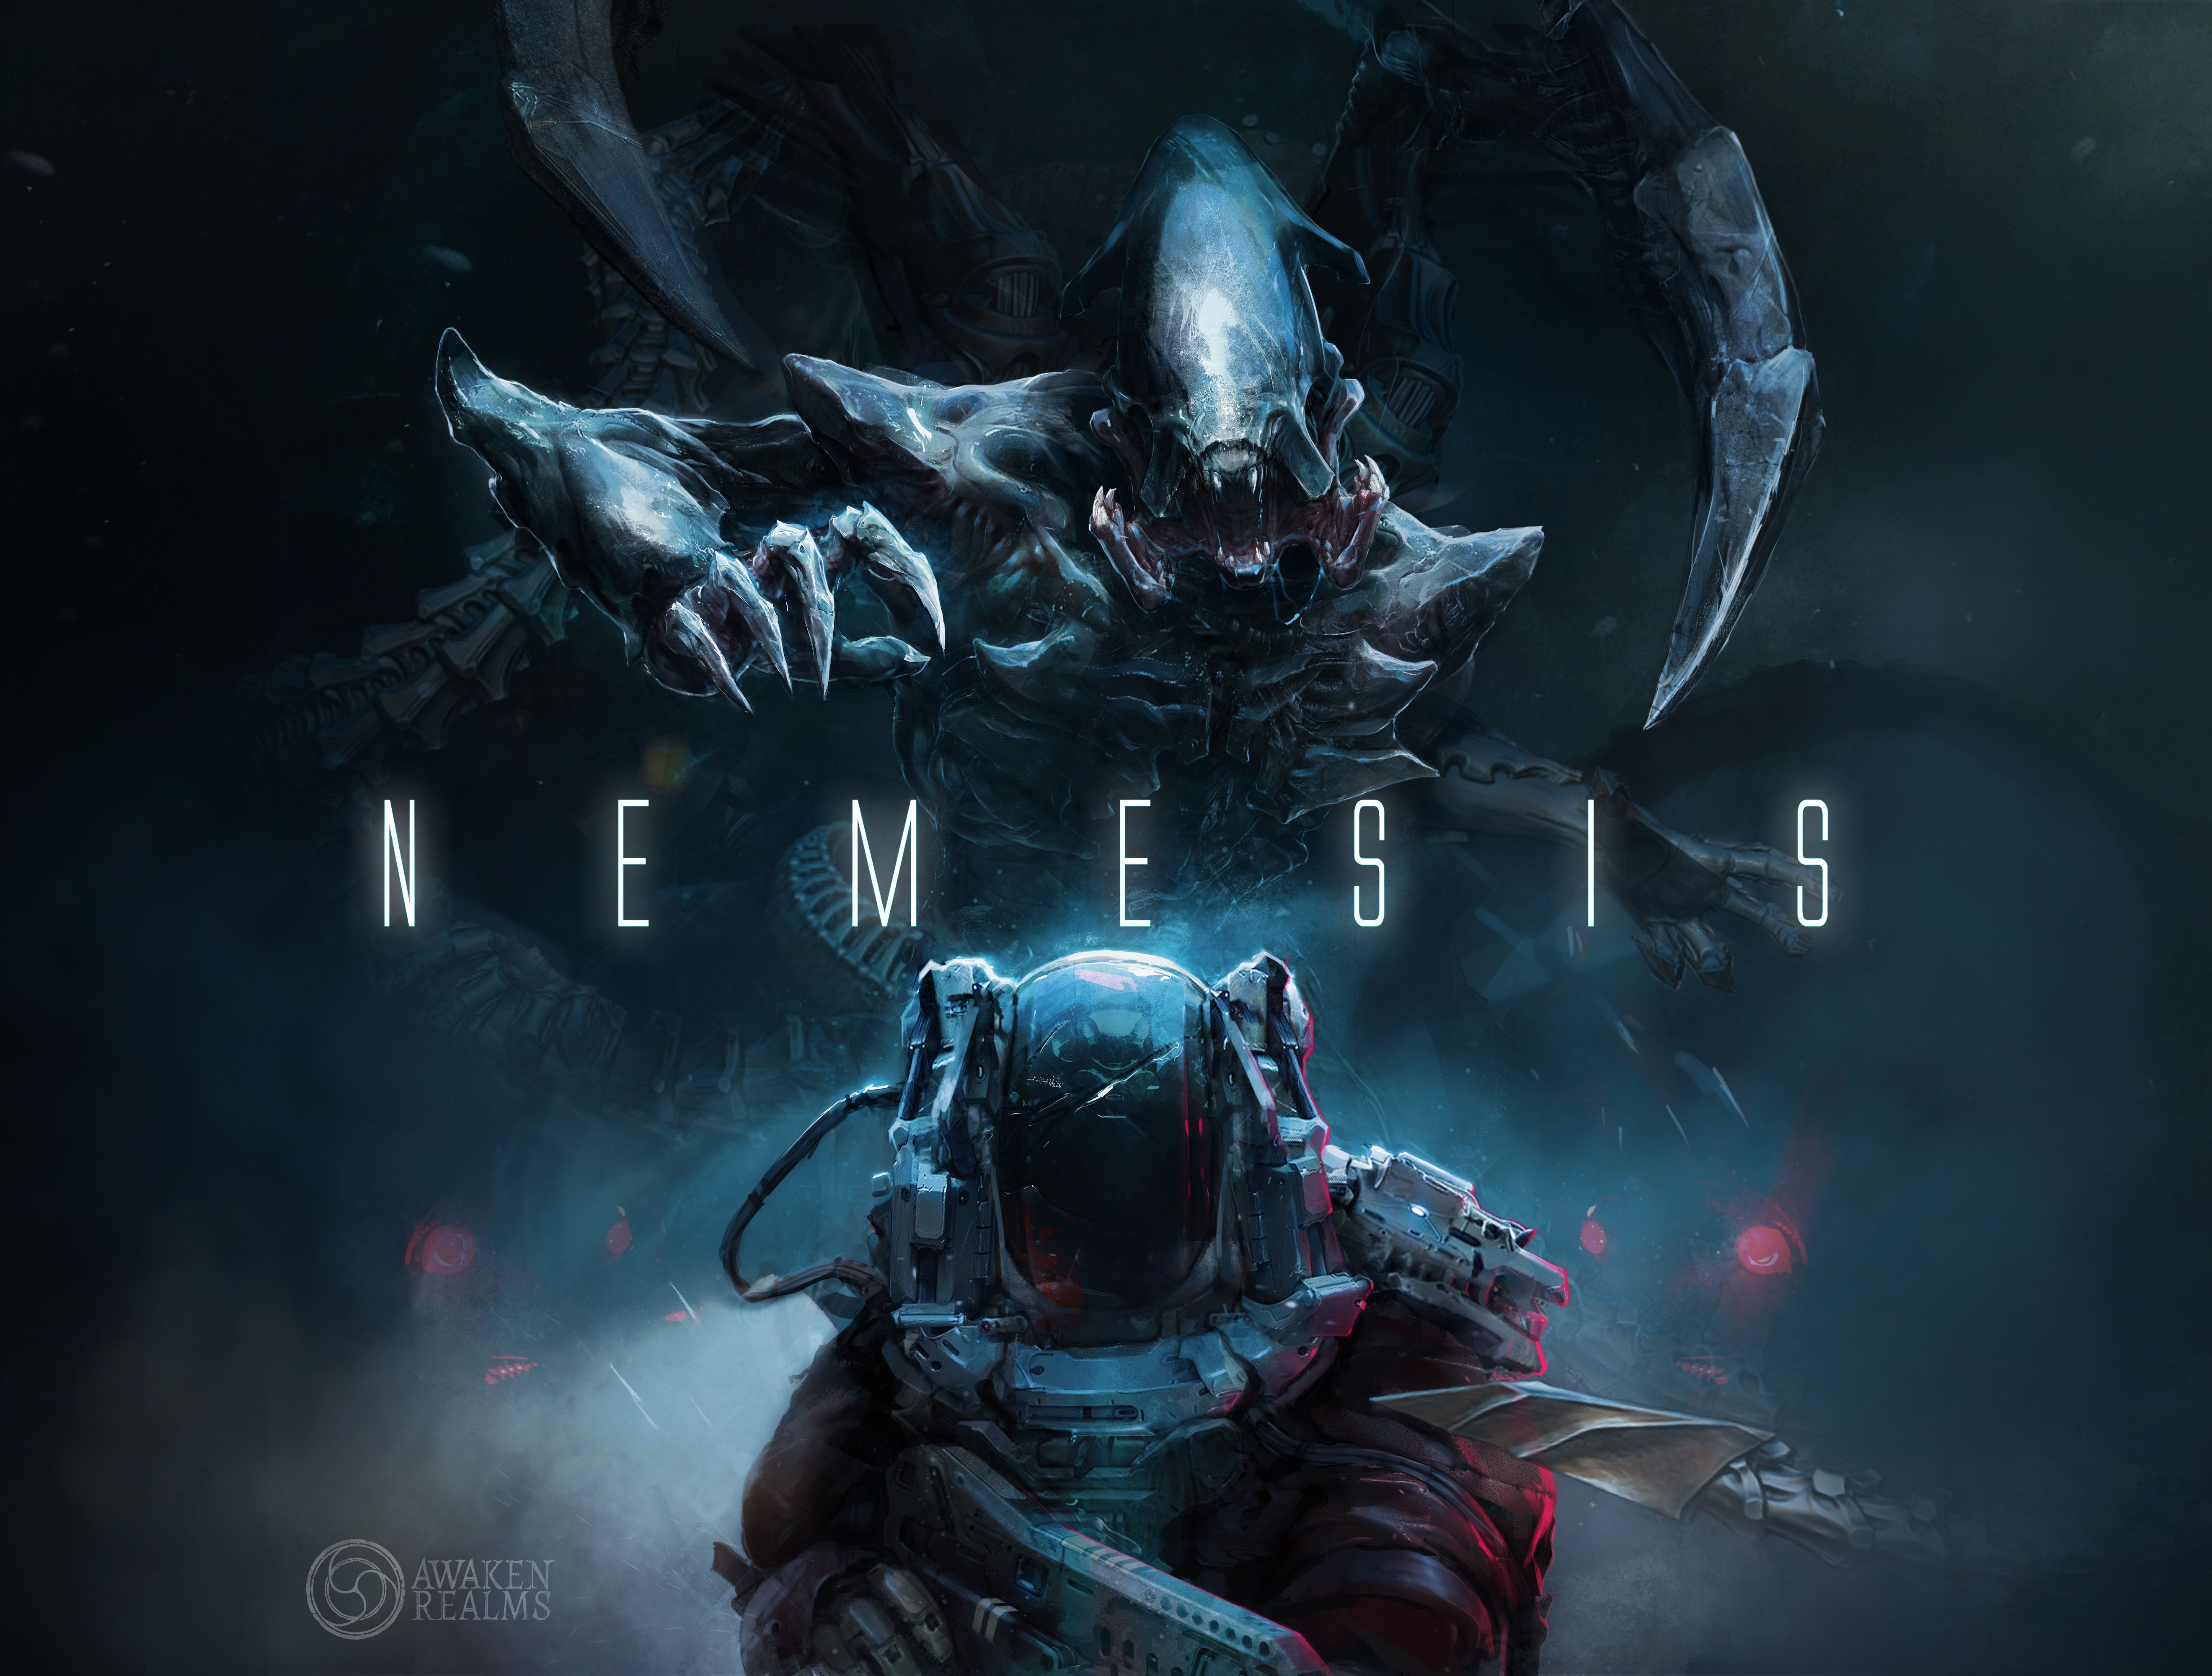 Main image for Nemesis